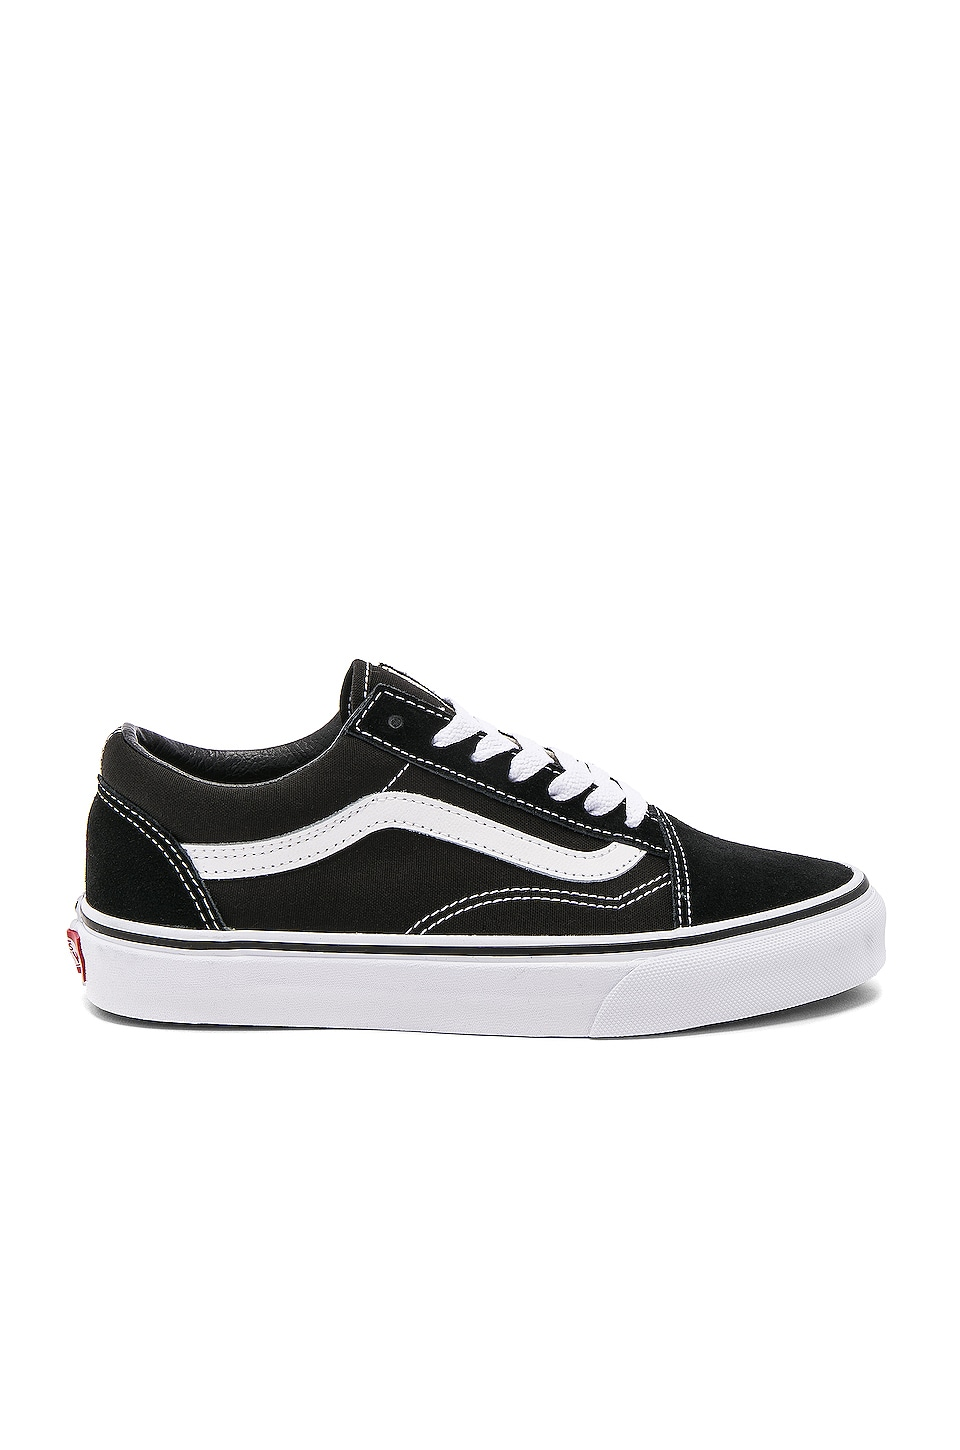 Vans Old Skool en Black